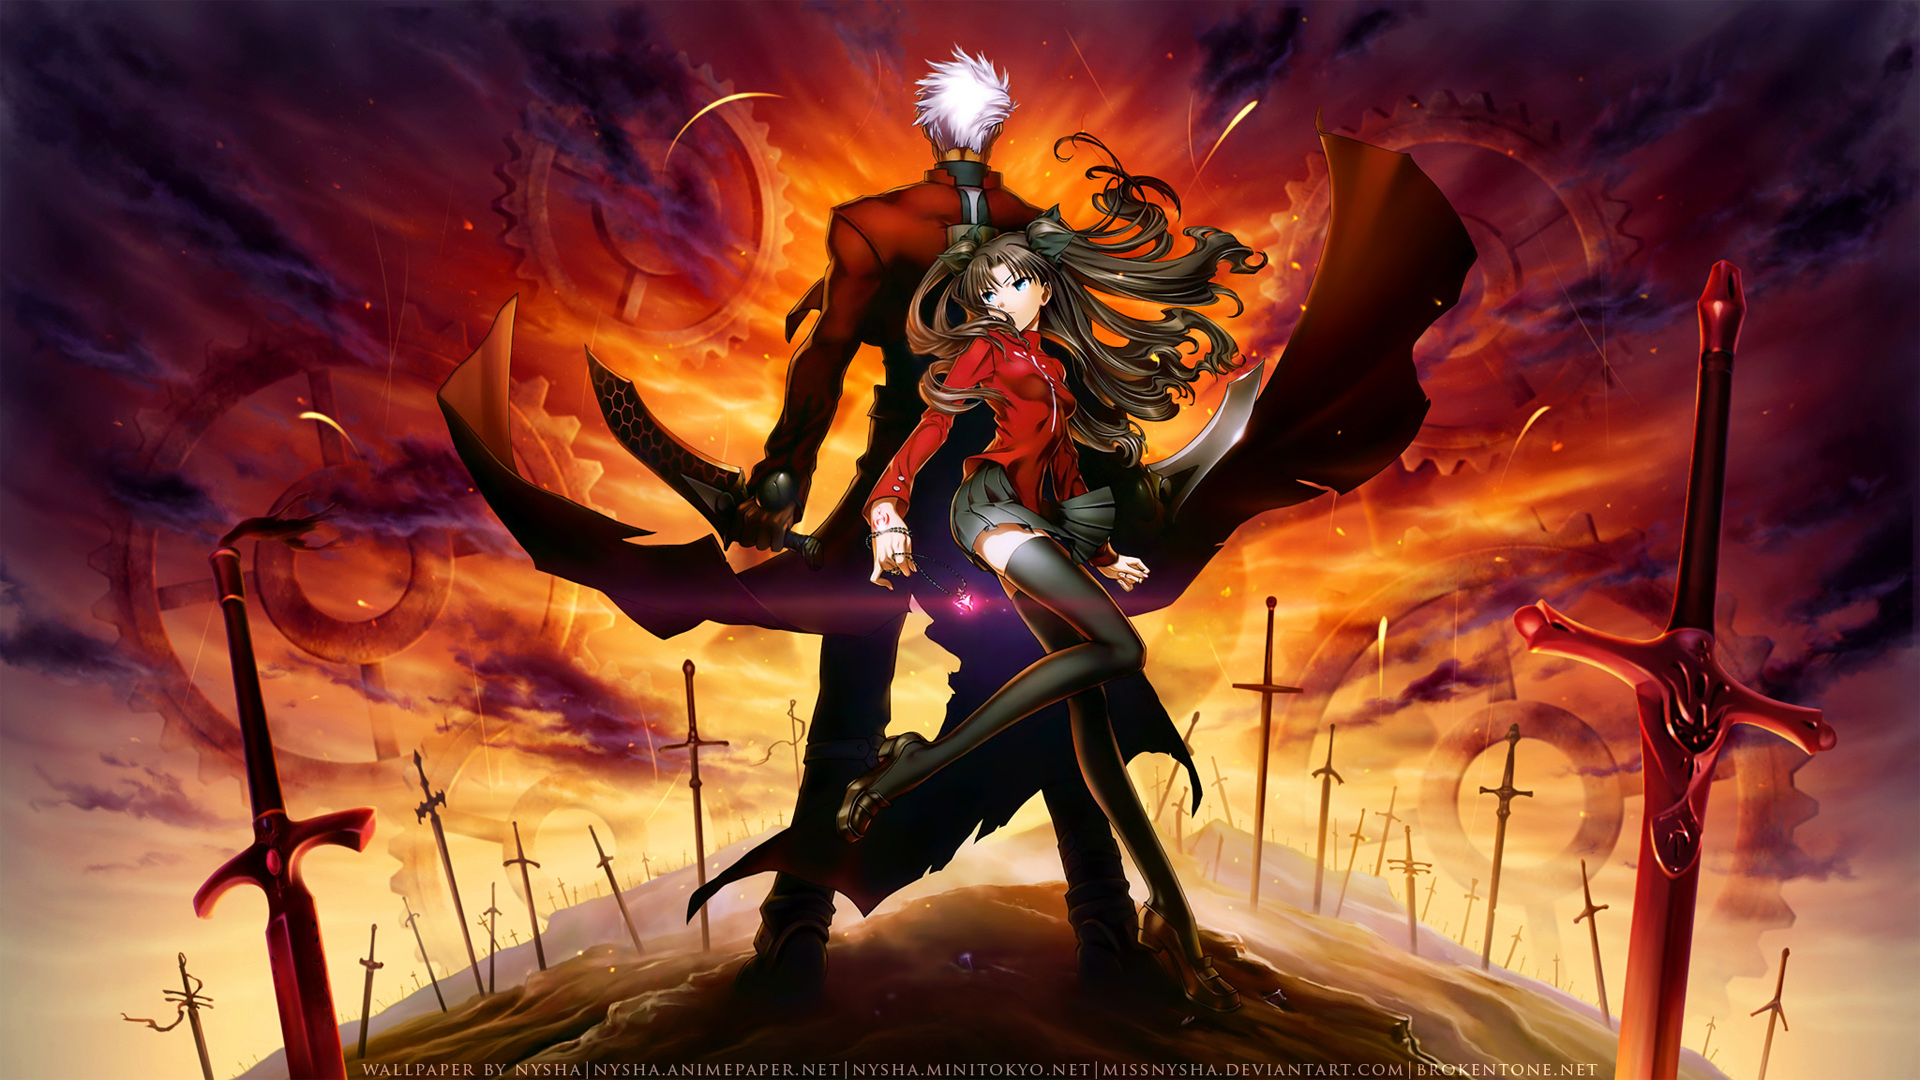 Fate Stay Night Wallpaper Their Fated Realm Minitokyo